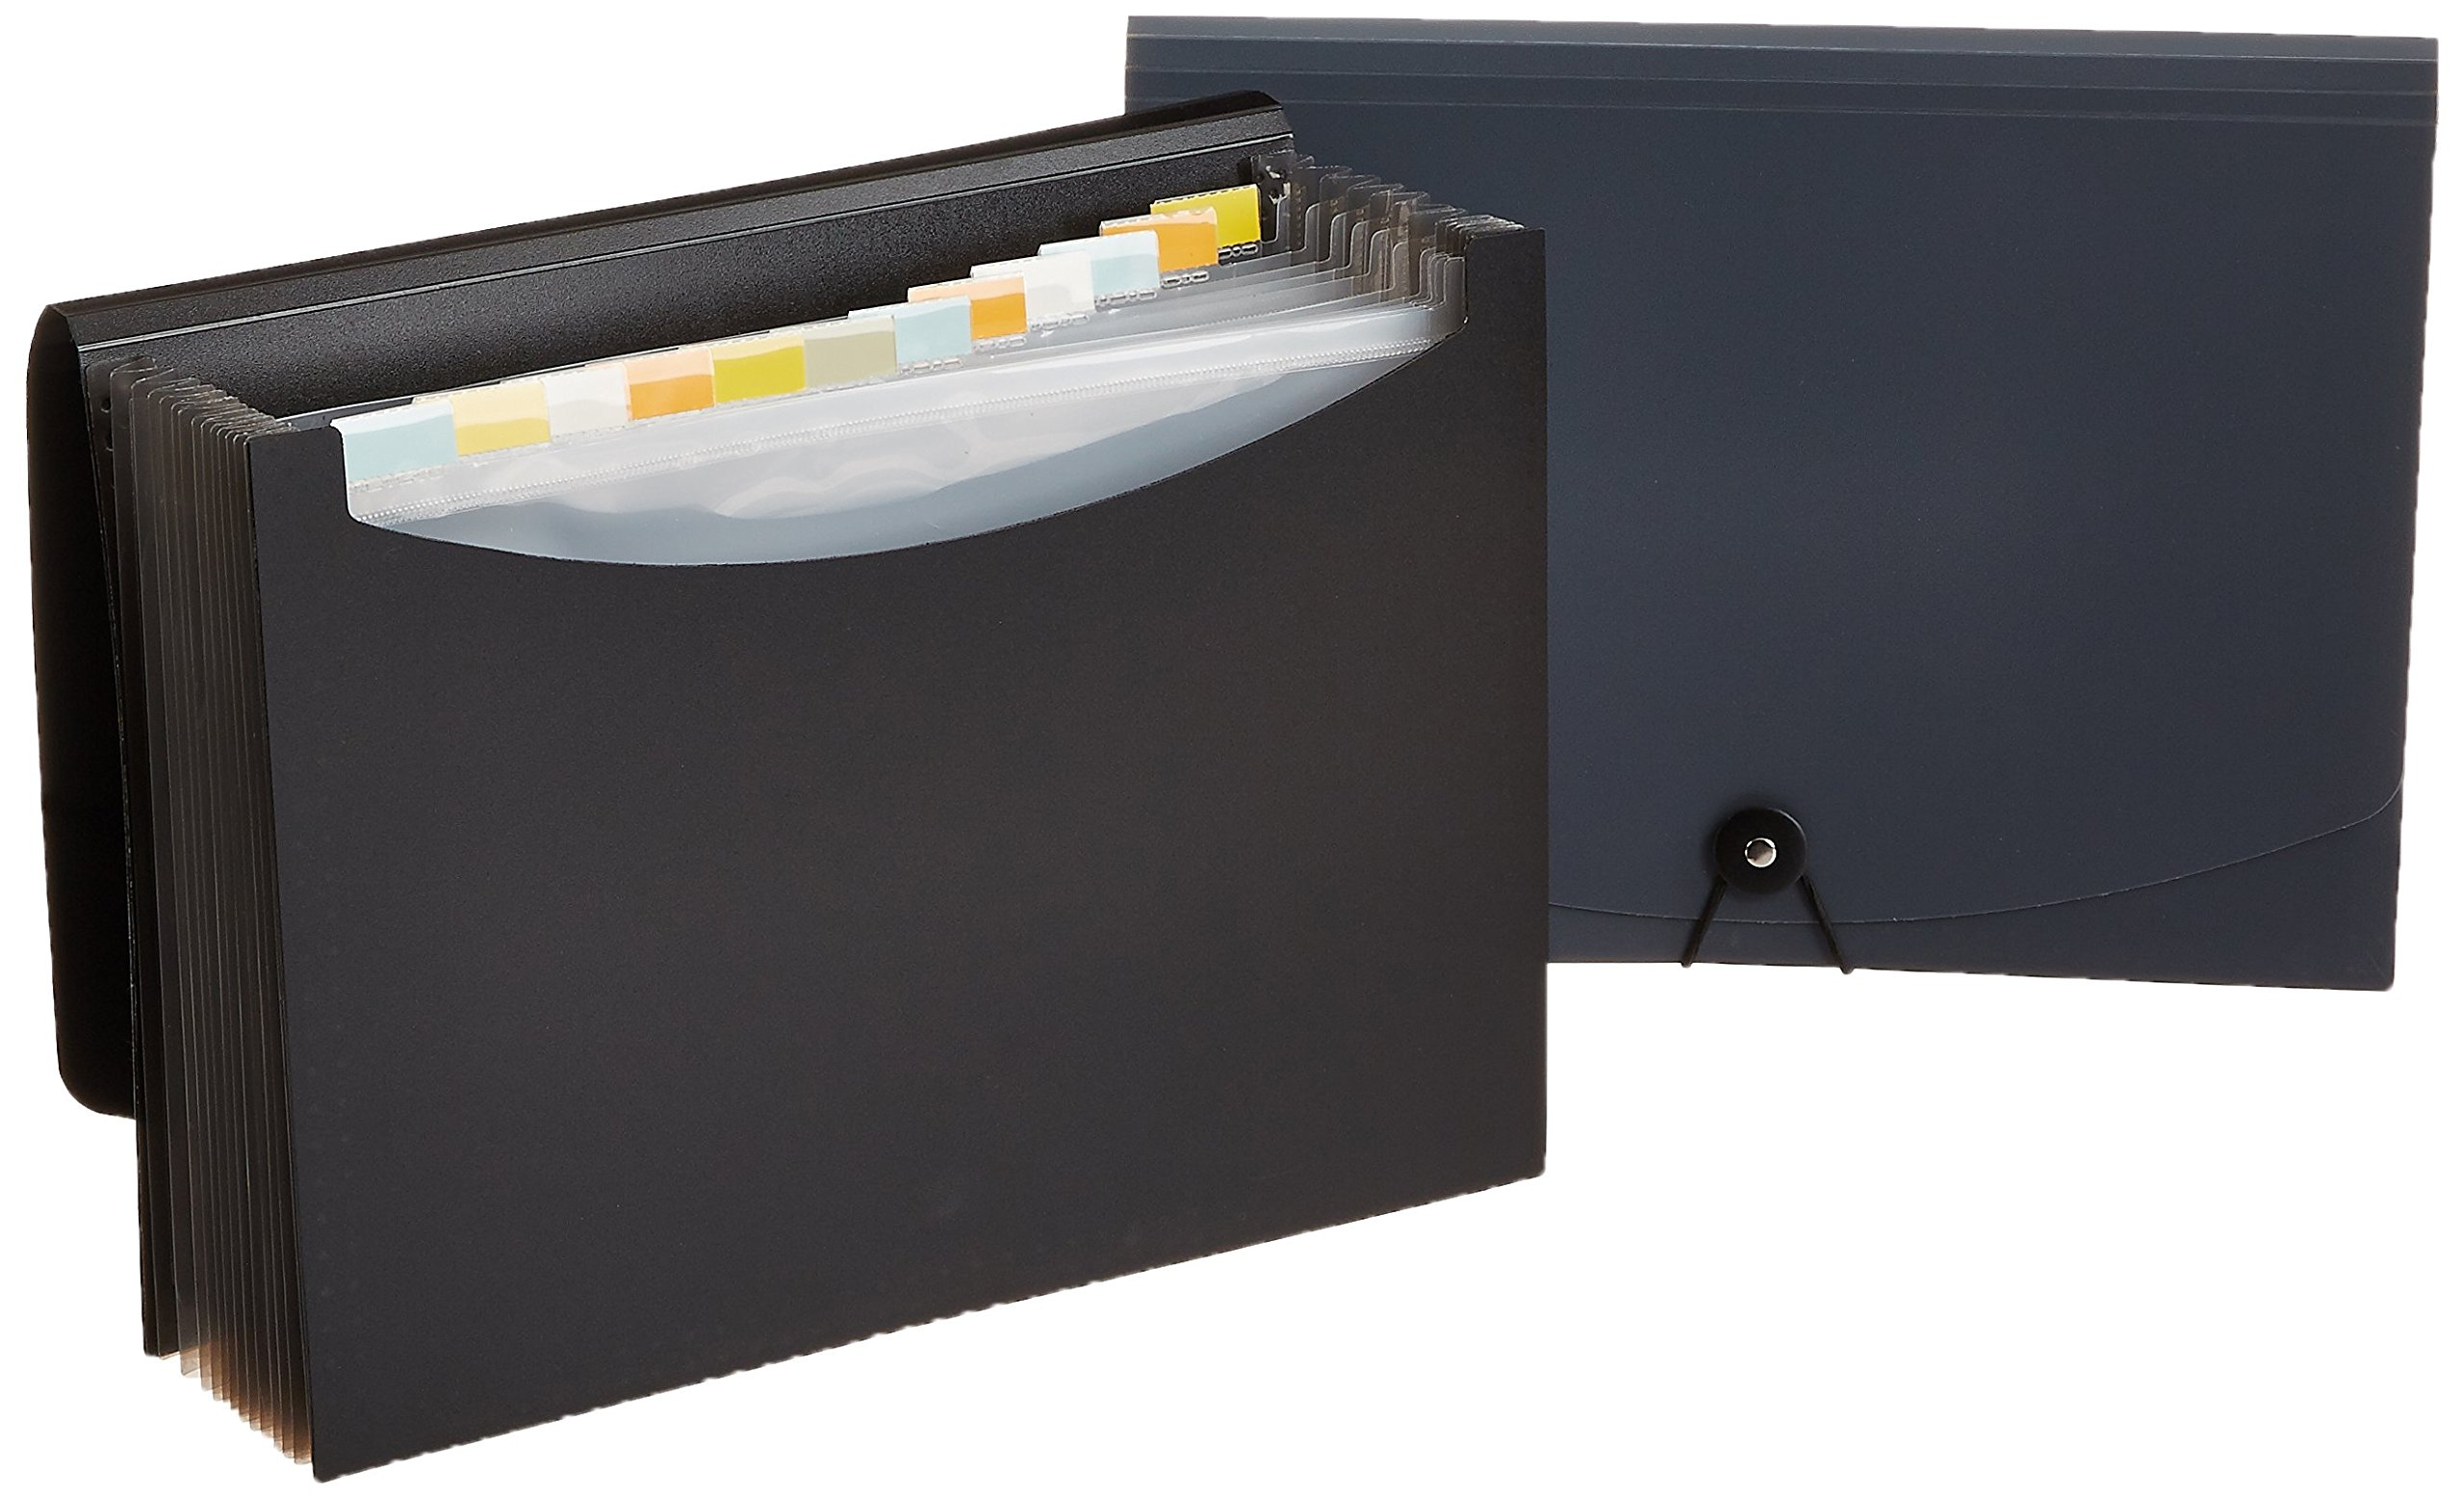 AmazonBasics Expanding File Folder, Letter Size (Fits A4 Paper) - Black/Gray (2-Pack) - with 13 pockets product image